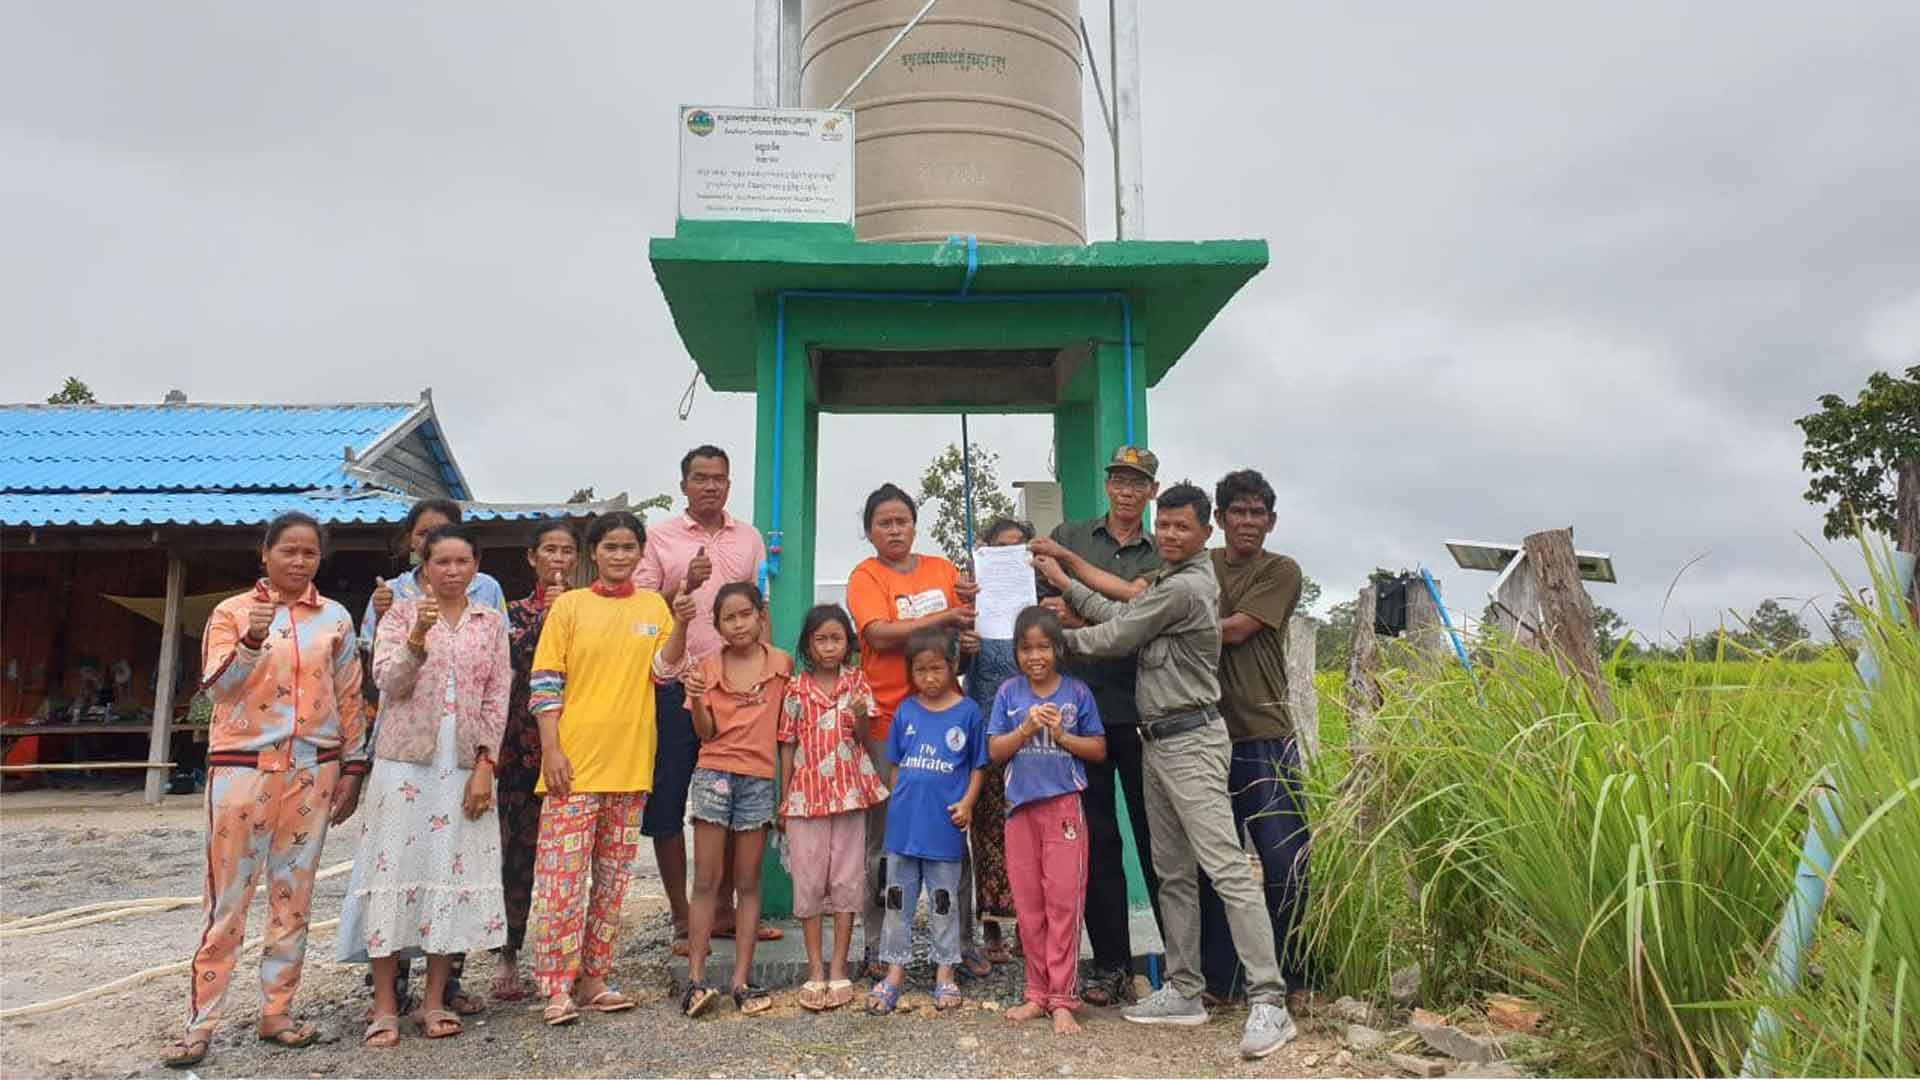 The Southern Cardamoms REDD+ Project brings water to villages in Cambodia